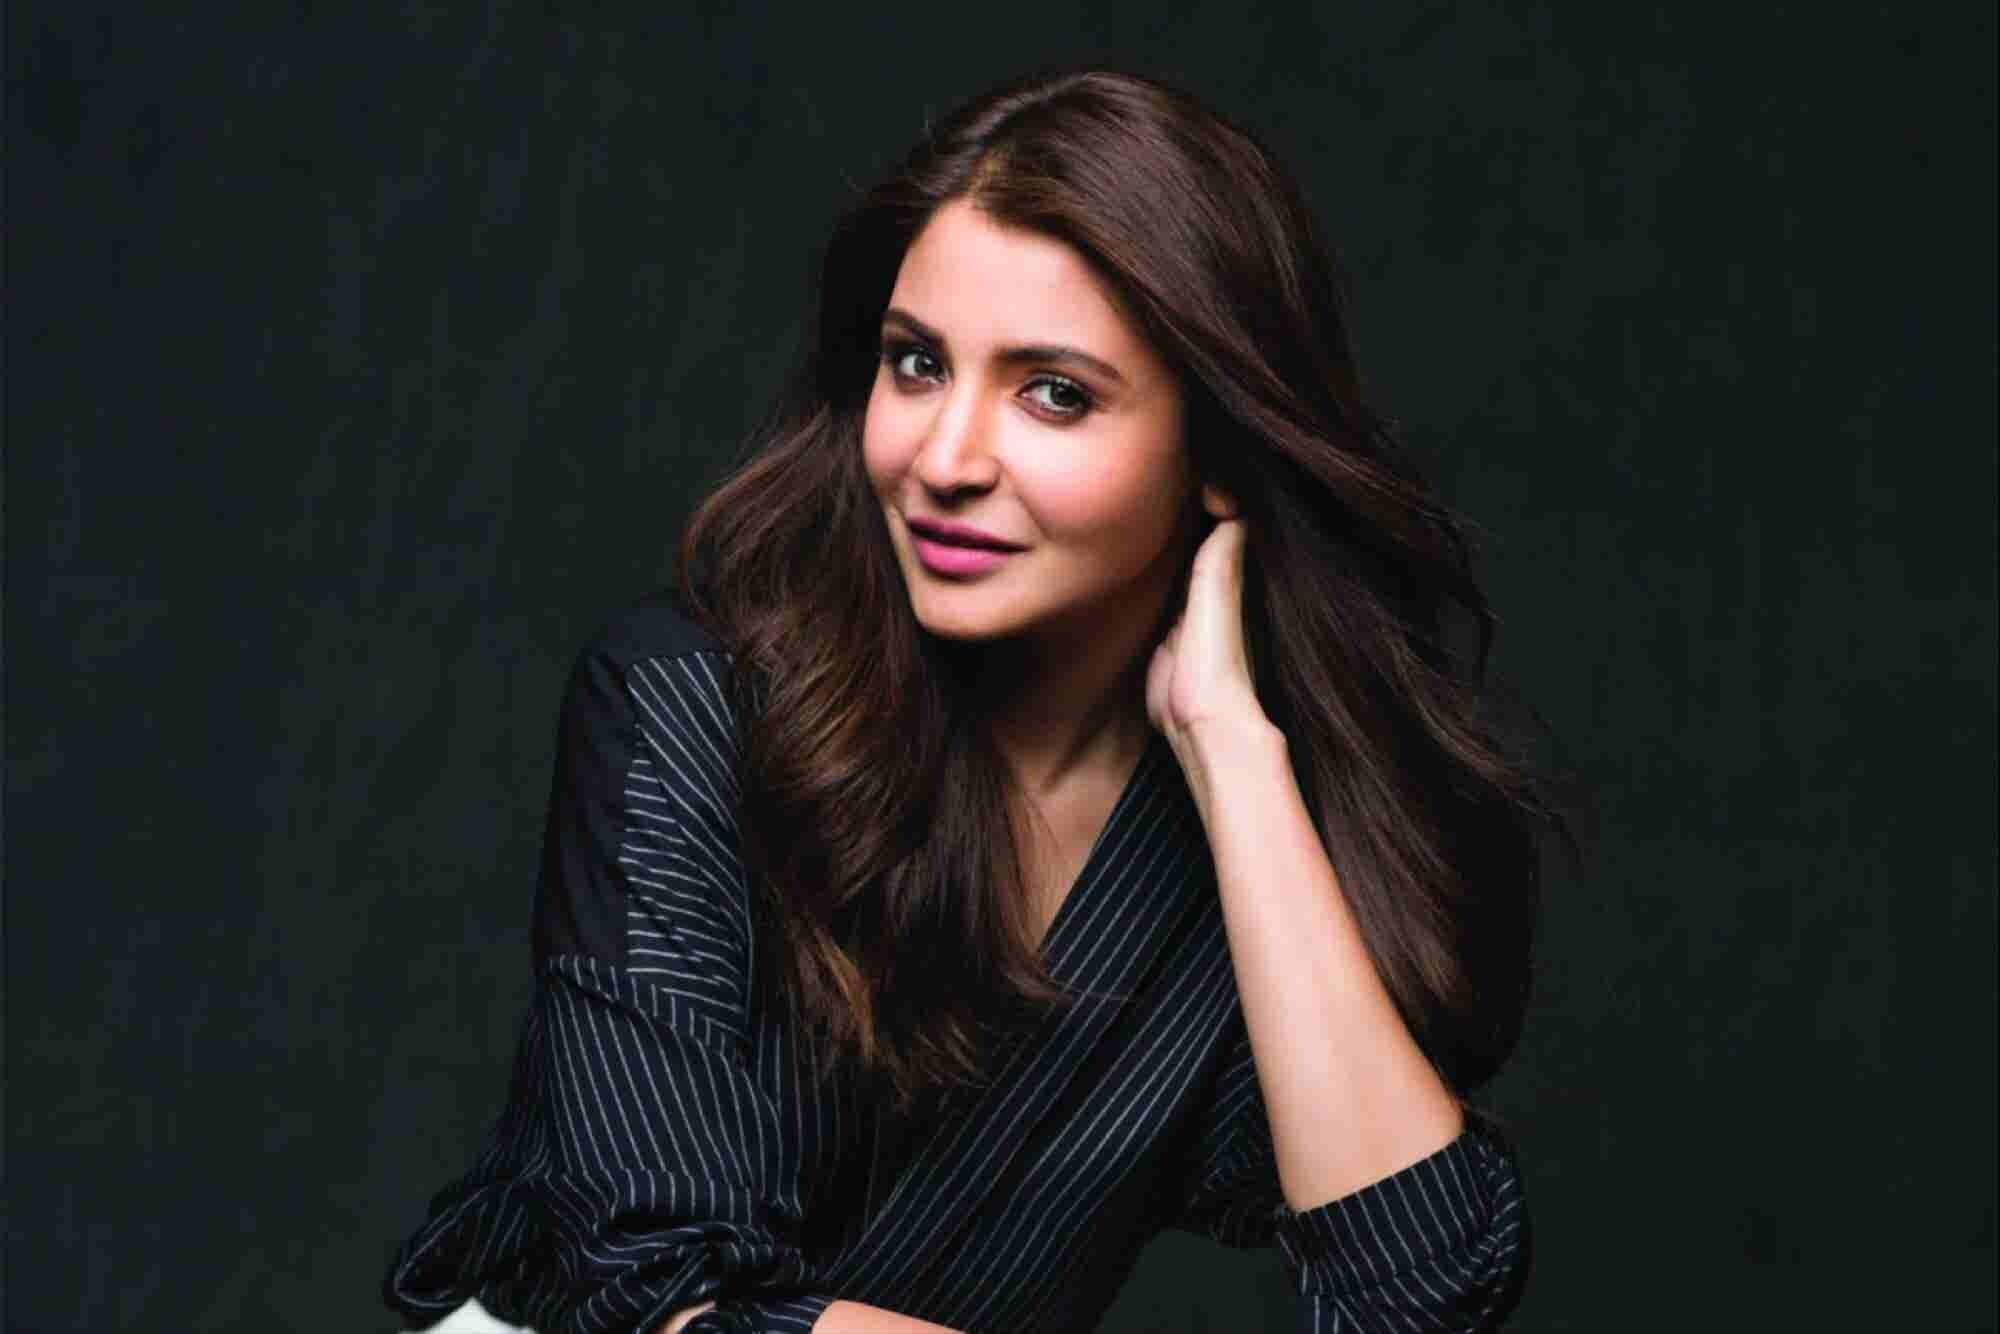 How Anushka Sharma is Making her Mark on-screen and Behind the Scenes